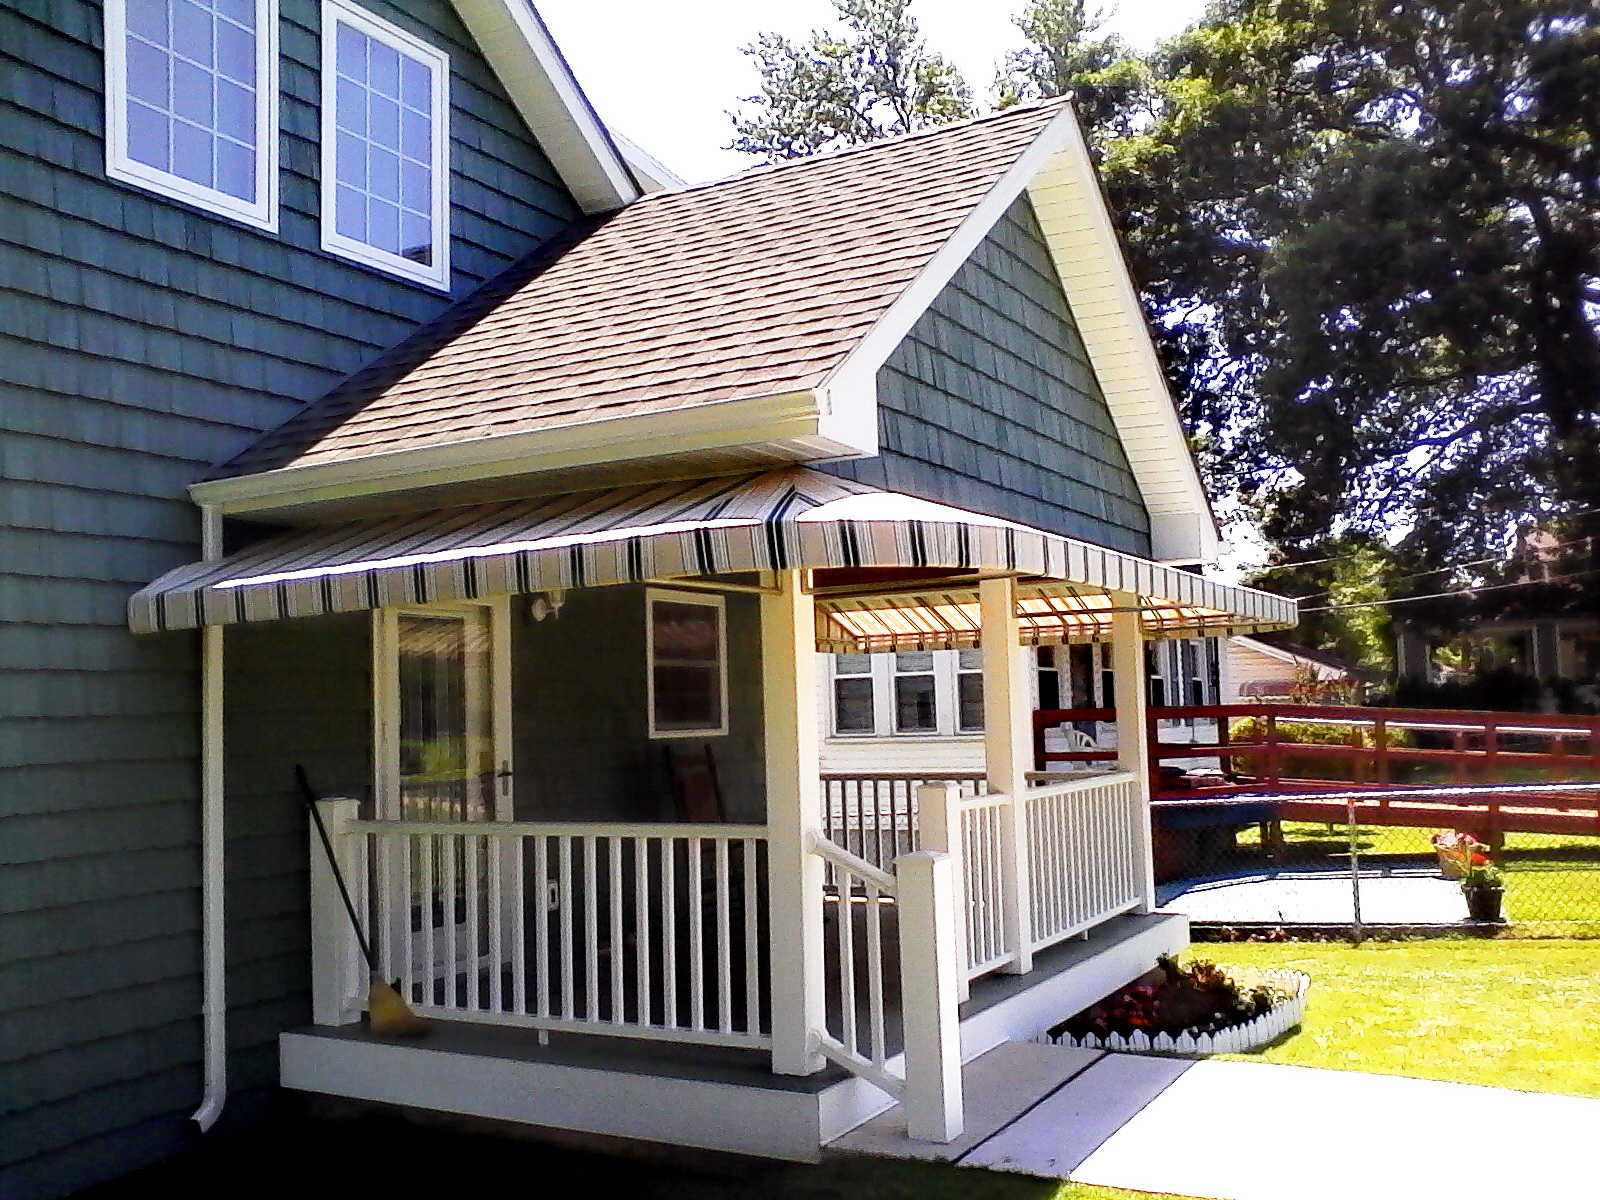 Residential-Porch Wrap Around Awning